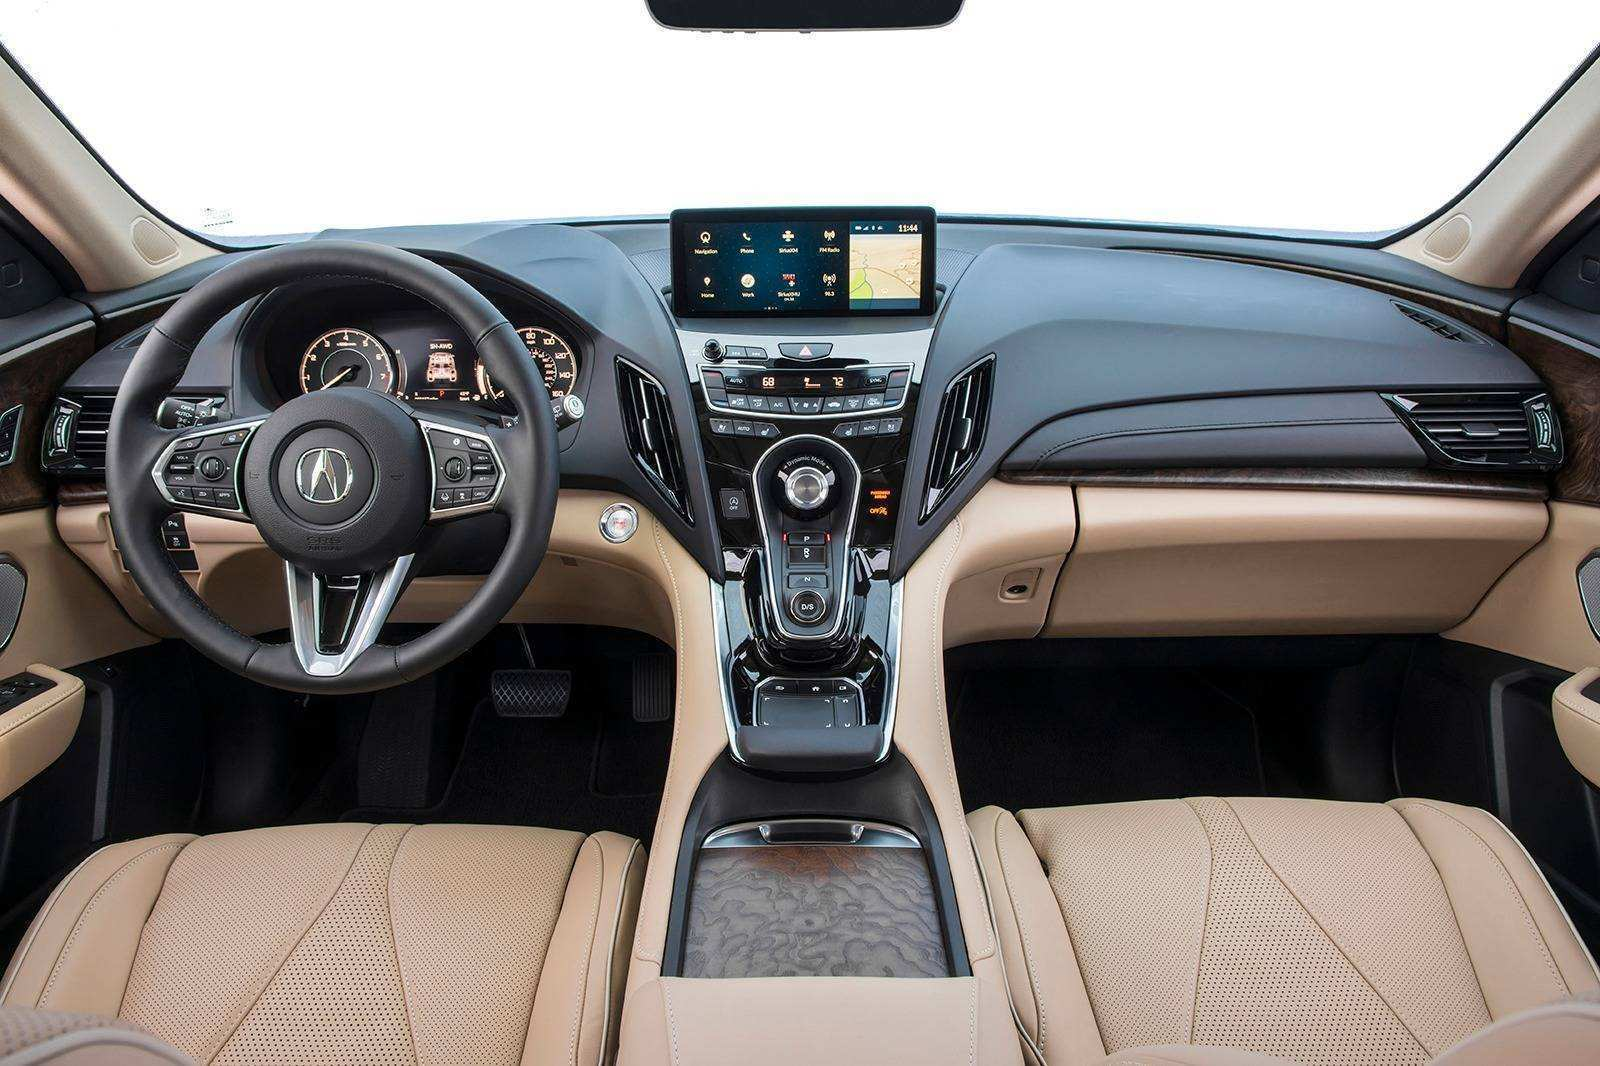 73 Great 2019 Acura Rdx Images Release Date for 2019 Acura Rdx Images